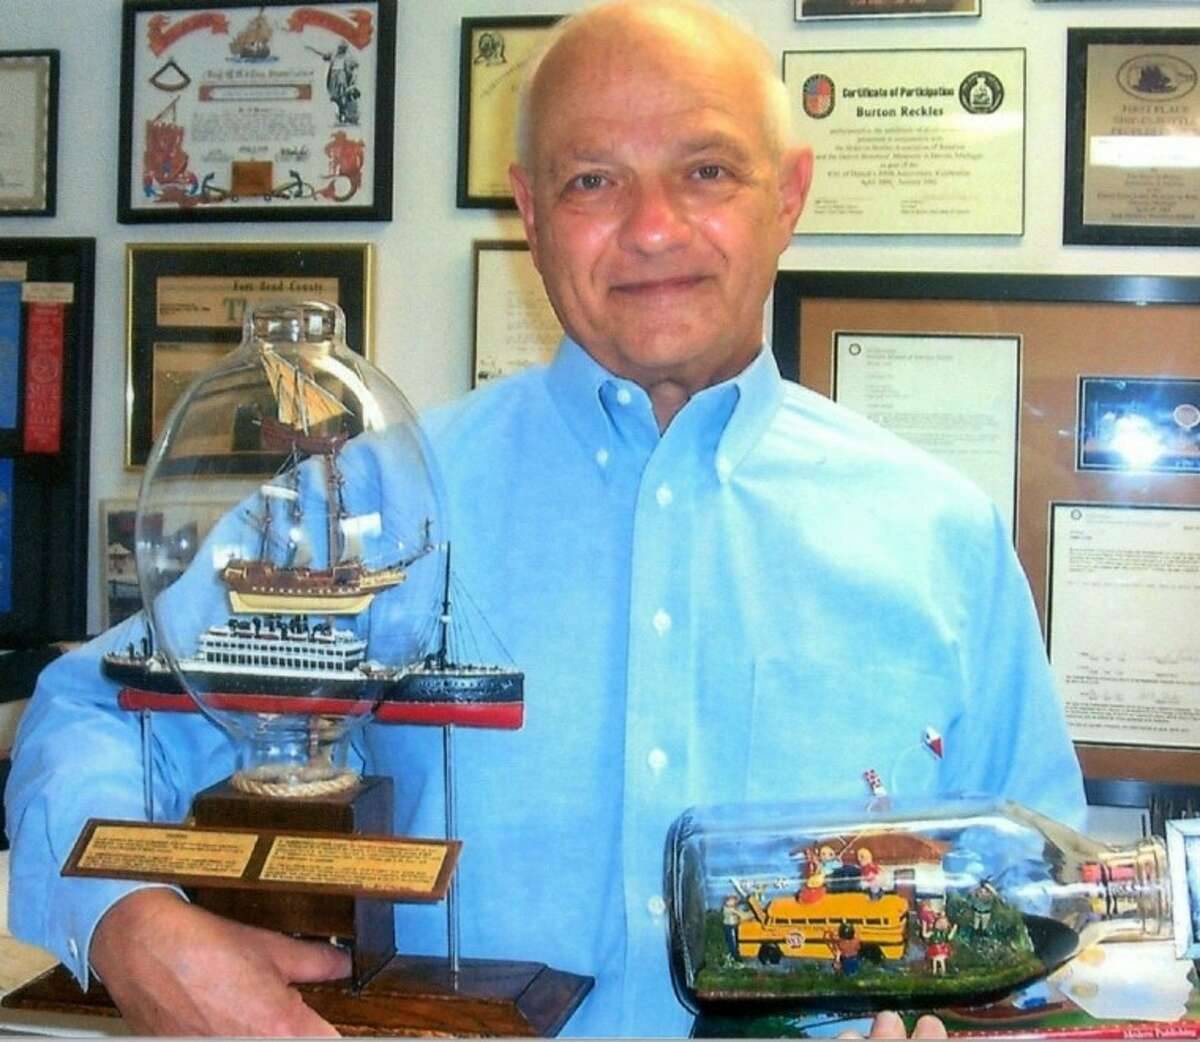 Fort Bend County Libraries' First Colony Branch Library, 2121 Austin Parkway in Sugar Land, will feature an exhibit of glass-encapsulated miniatures fFrom the studio of Sugar Land resident Burton D. Reckles throughout January.